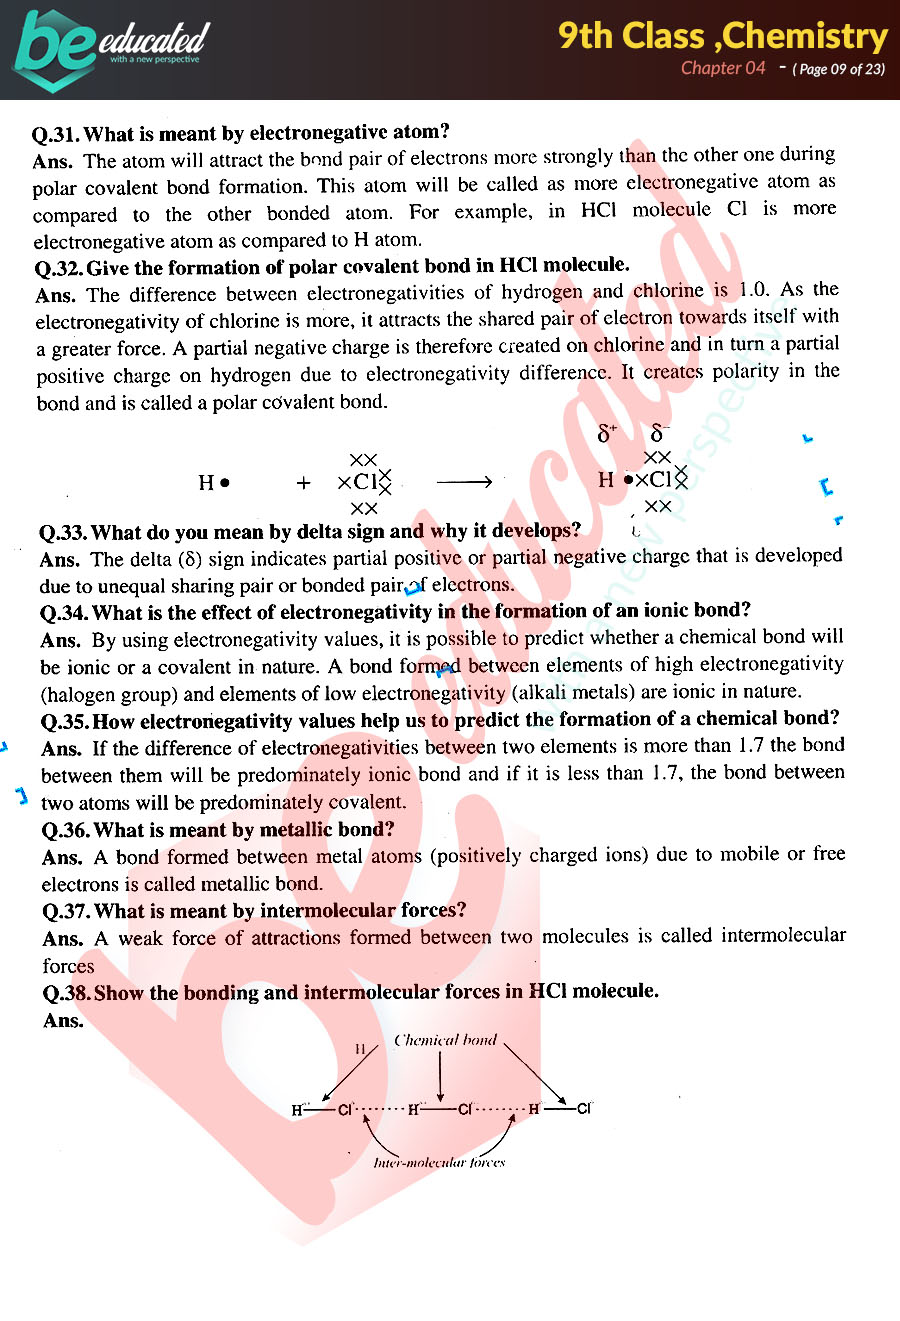 Chapter 4 Chemistry 9th Class Notes - Matric Part 1 Notes